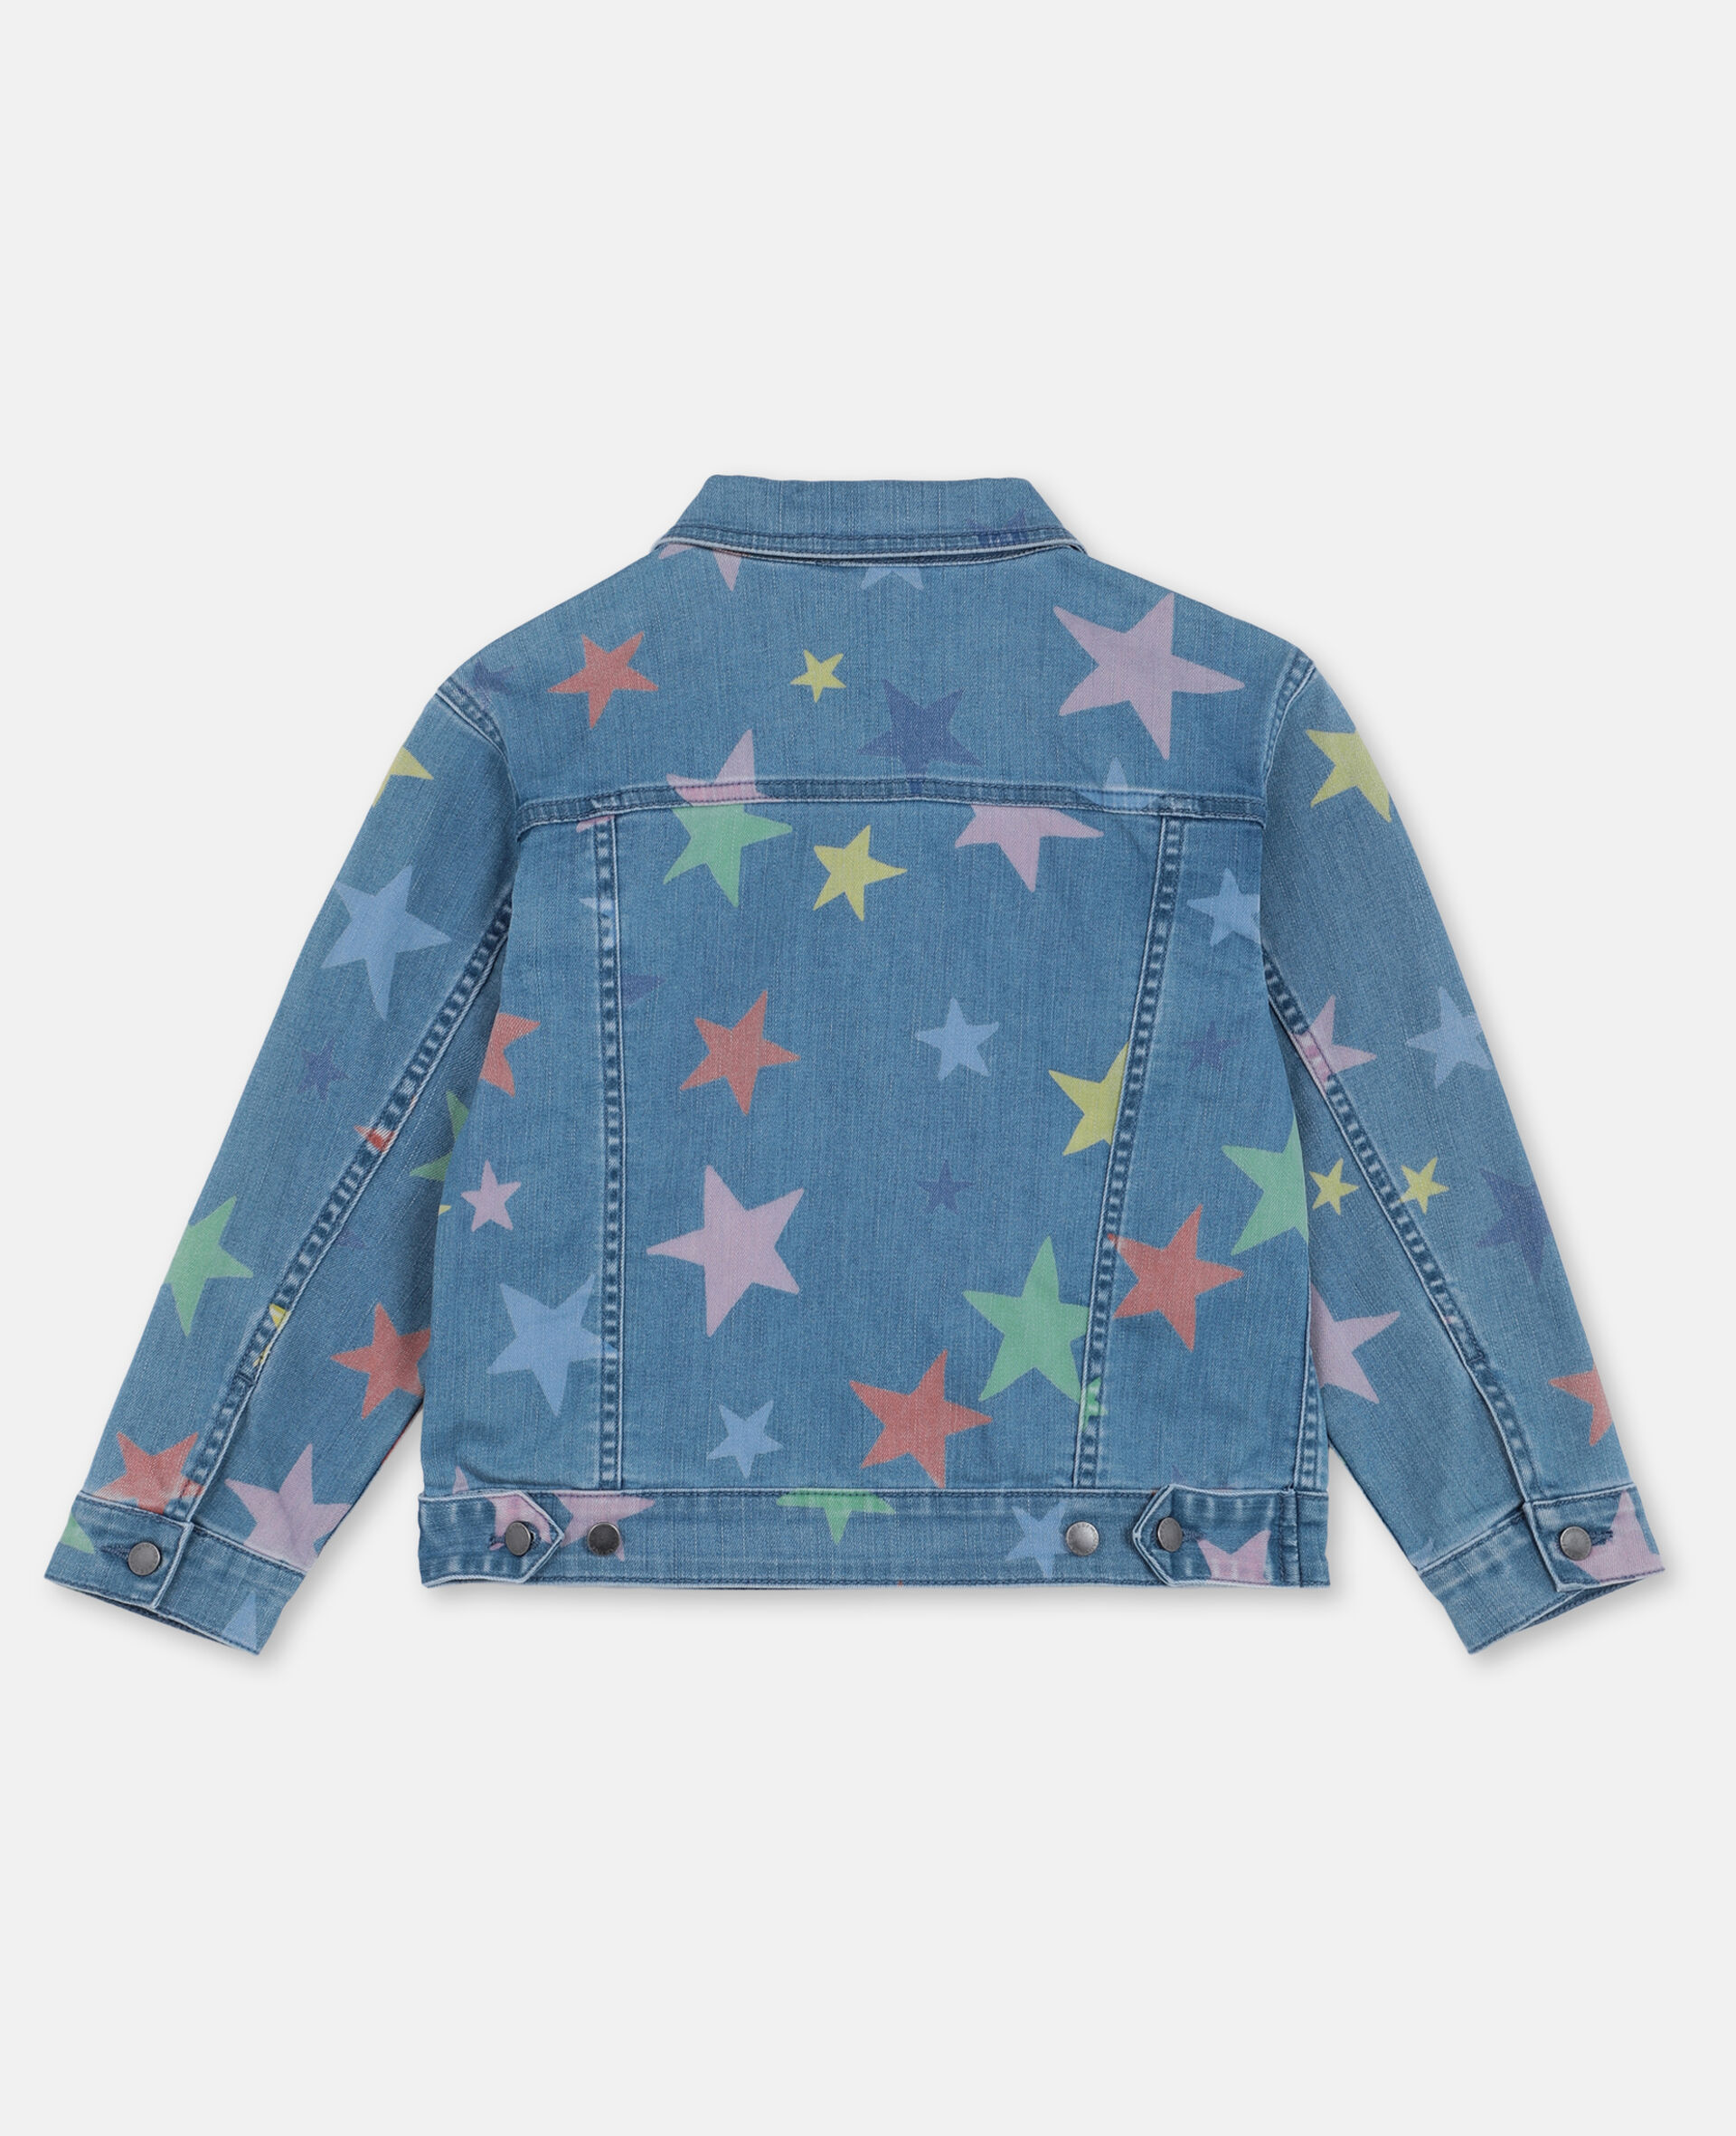 Multicolour Stars Denim Jacket -Multicolour-large image number 3